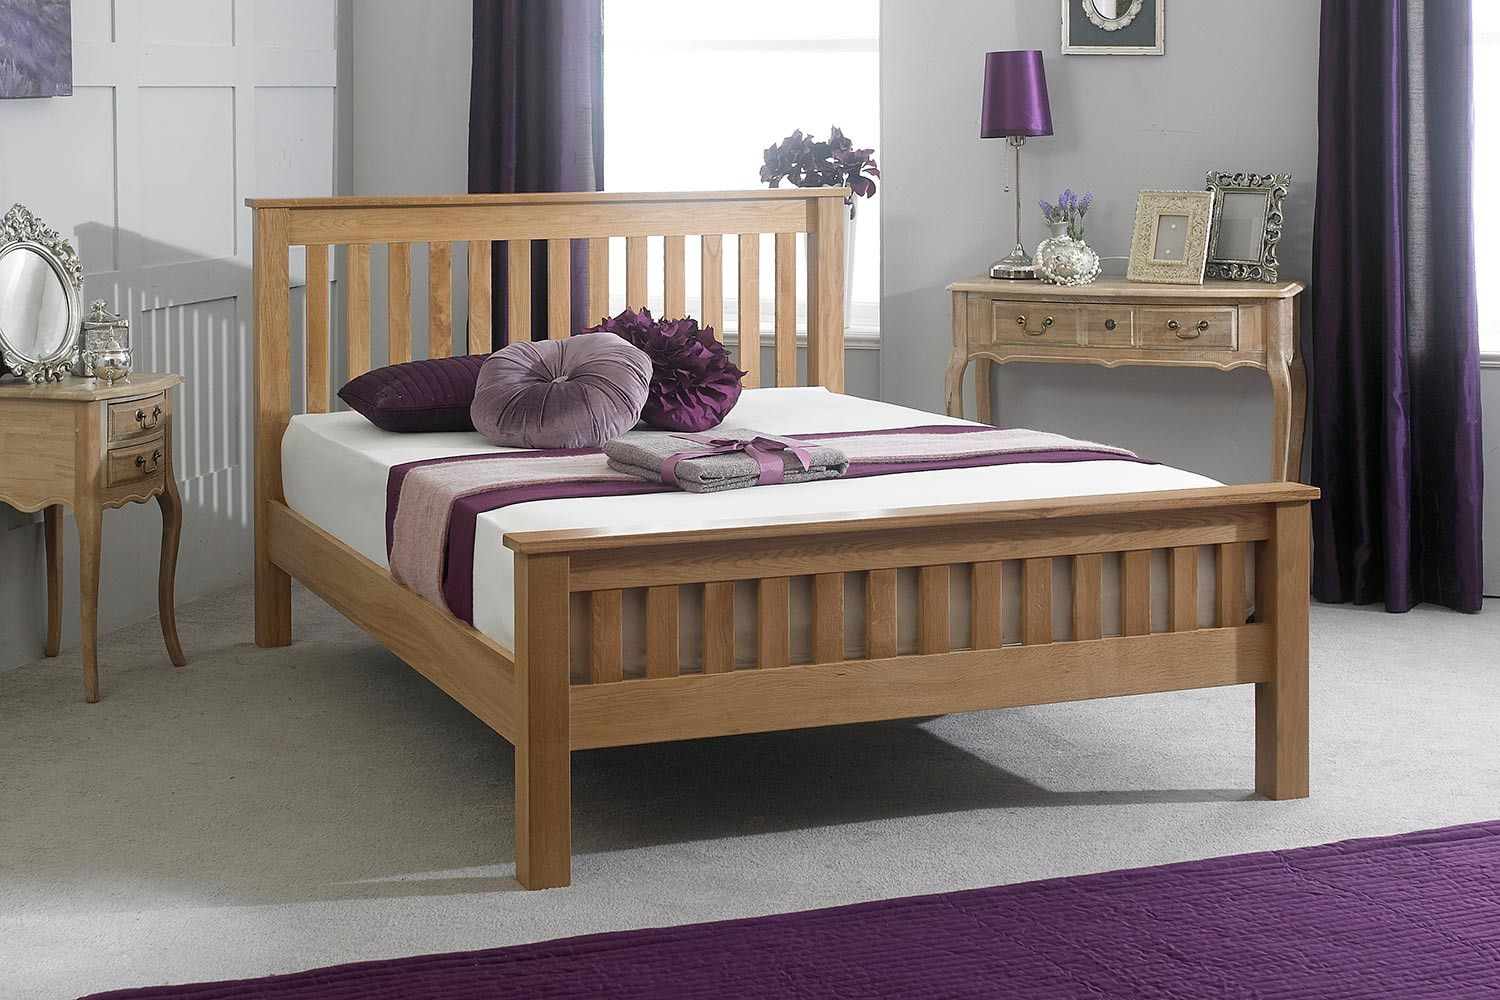 Roma Solid Oak Bed Frame 5ft - King Size | Camas y Productos